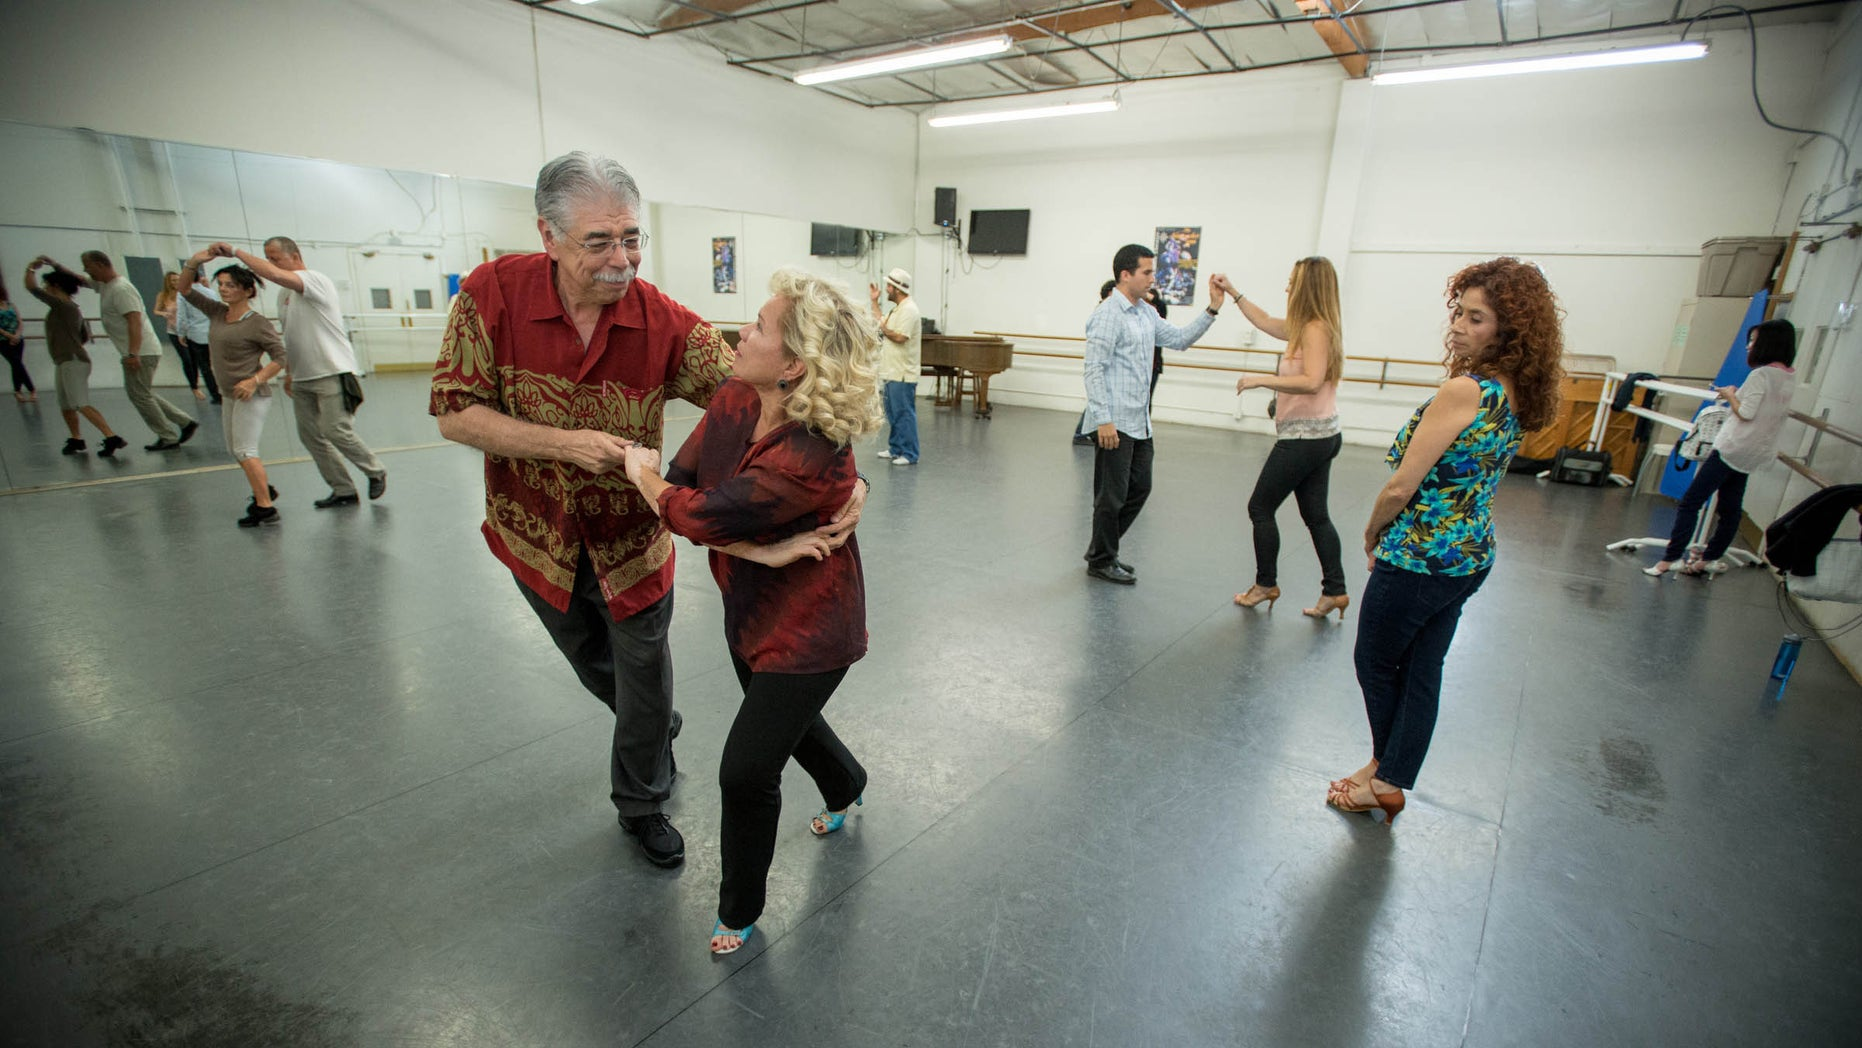 Charles Trevino, a patient at Cedars-Sinai Medical Center, and his wife Carmen during salsa dancing lessons at the Pasadena Dance Theatre, Thursday, Nov. 14,  2013. (Eric Reed/Cedars-Sinai Medical Center)